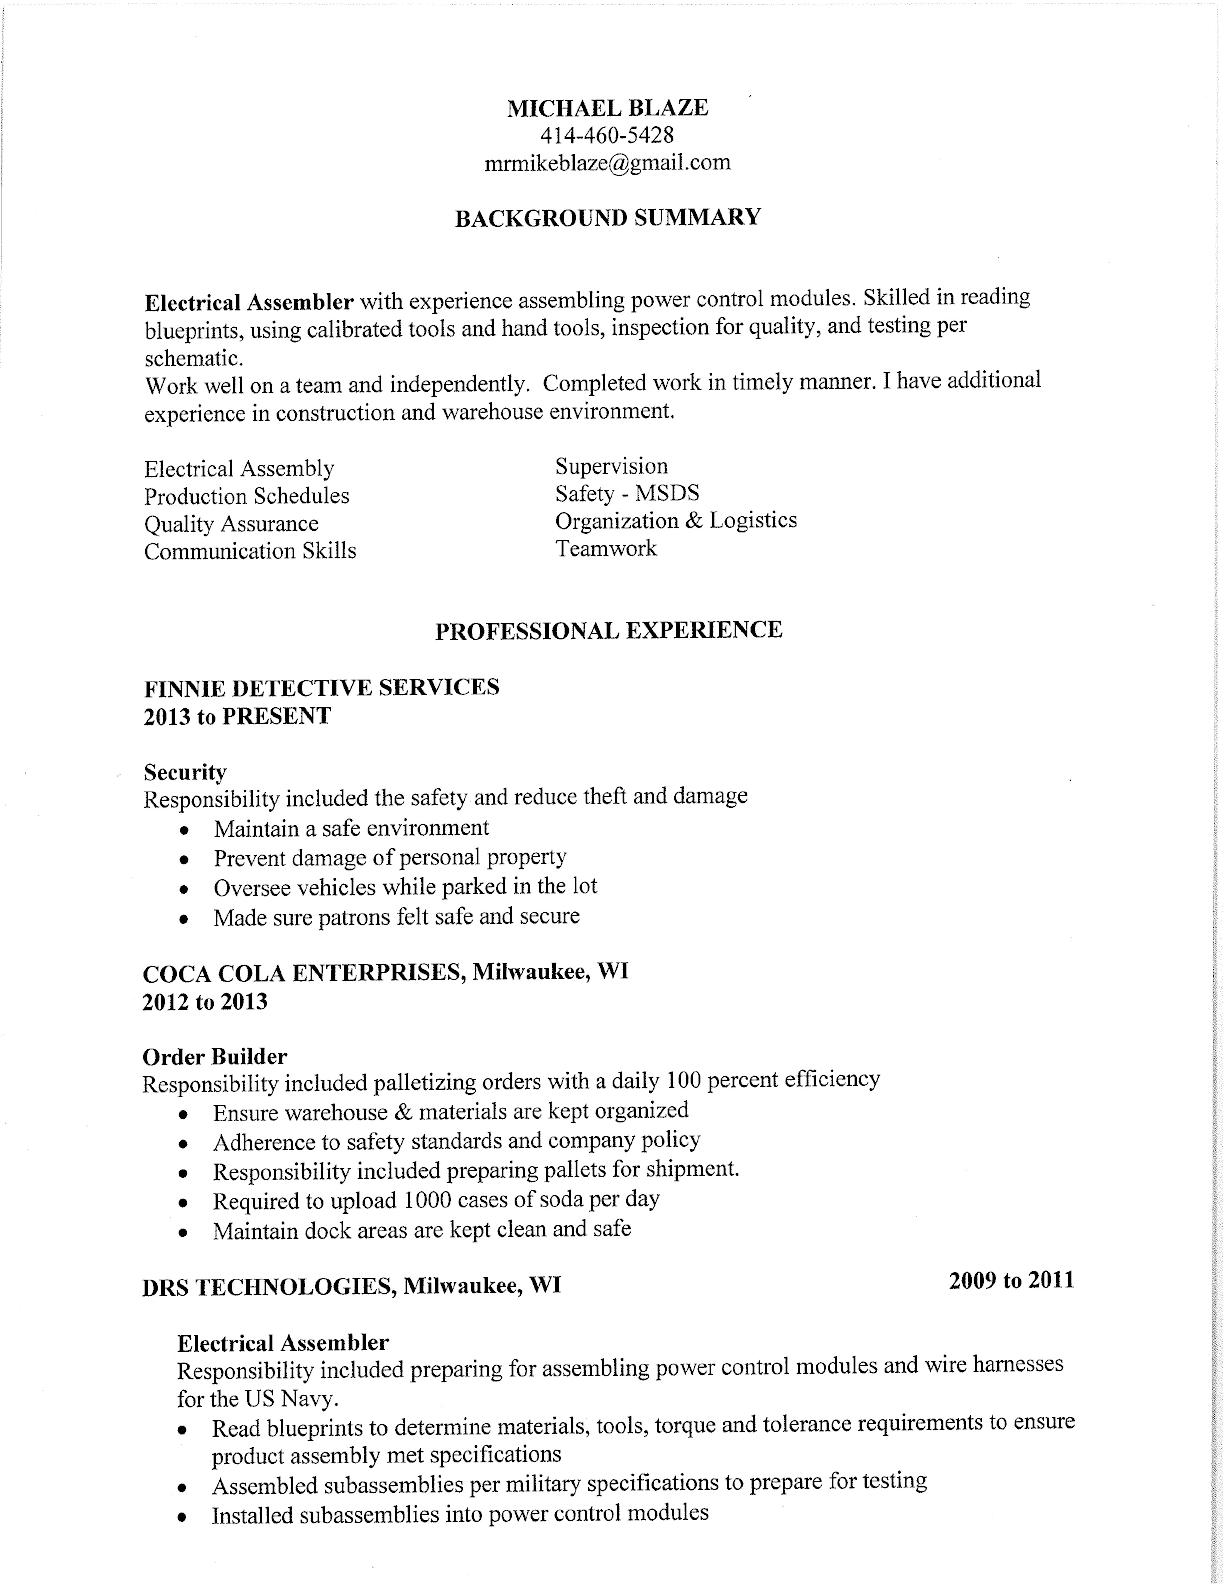 professional order builder resume template